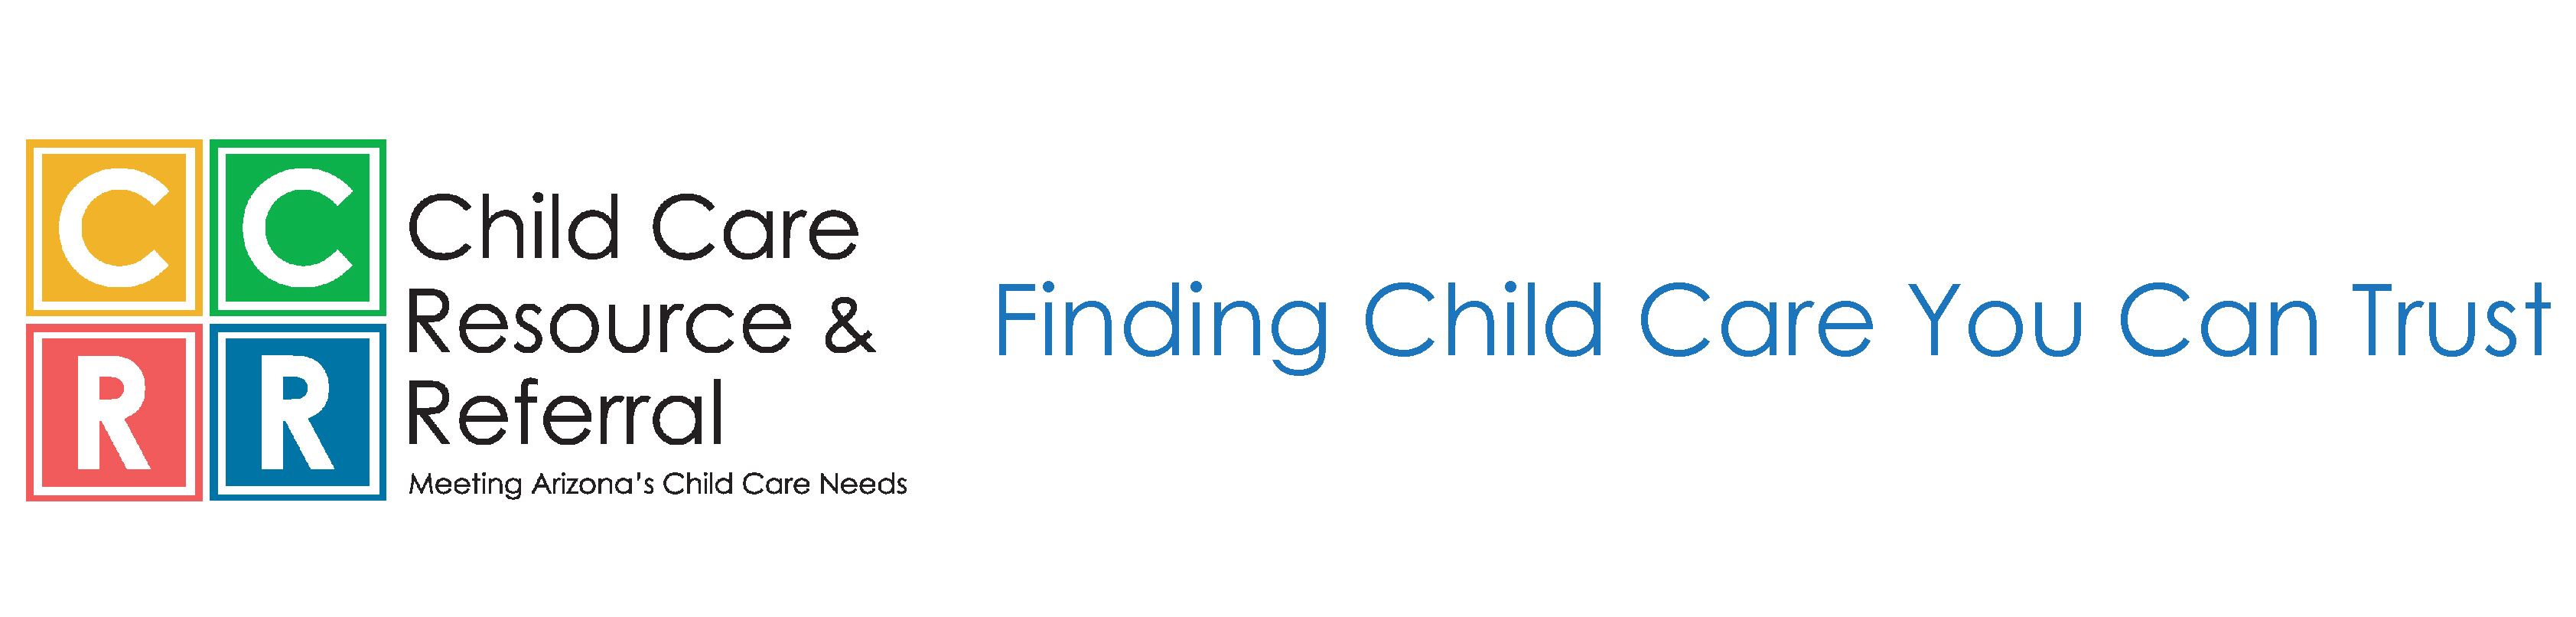 Finding Child Care You Can Trust